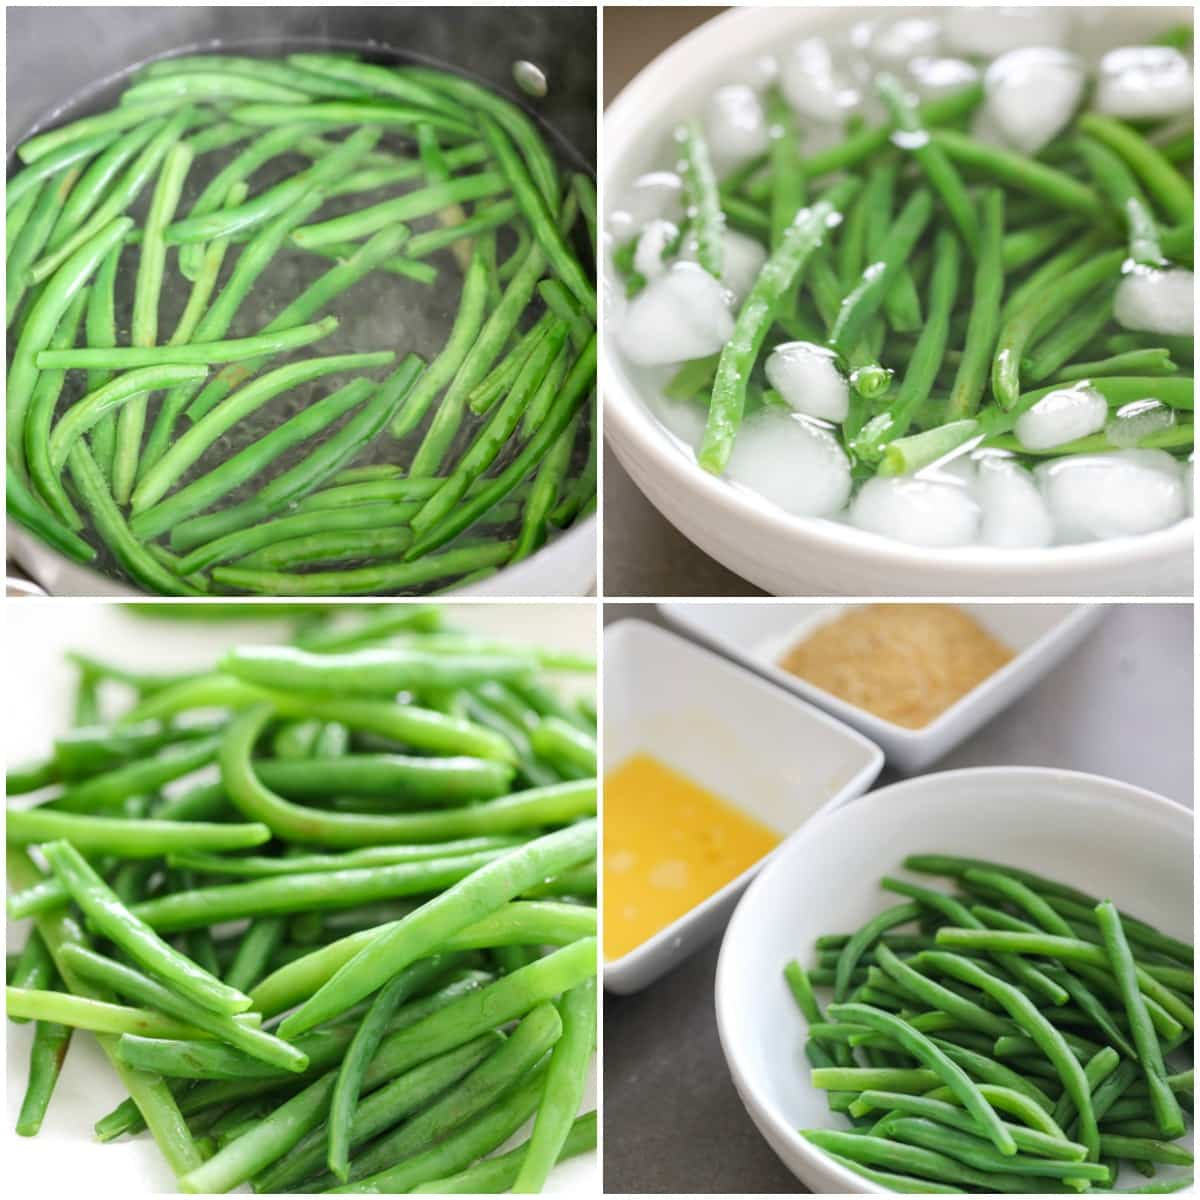 Process pics for blanching green beans before frying